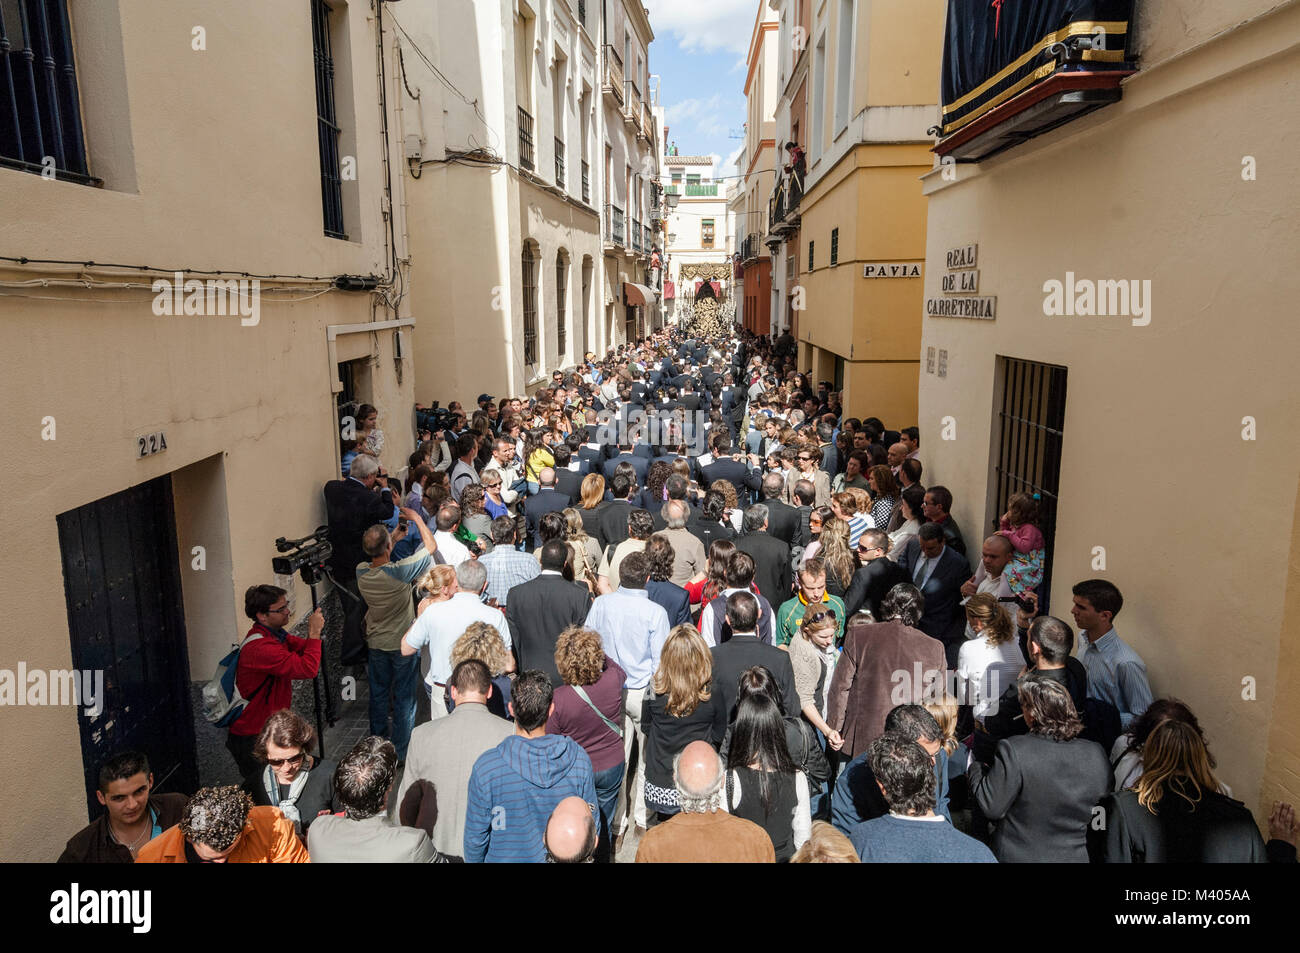 Point of view in which the float of pallium of the brotherhood of 'La Carreteria' is appreciated, followed - Stock Image